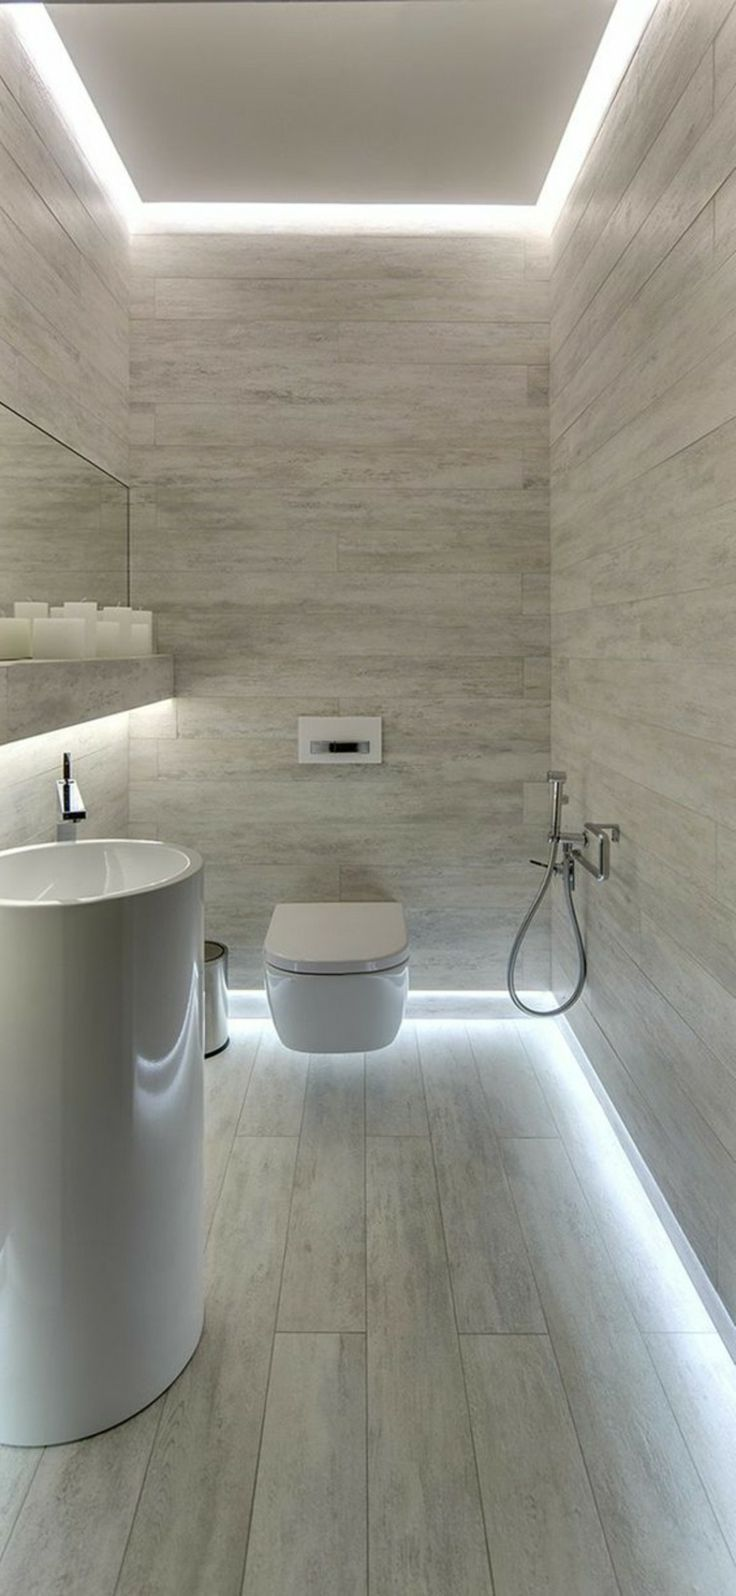 30 Relaxing Bathroom Ceiling Lights Ideas For Cozy Bathroom To Try In 2020 Modern Bathroom Design Ceiling Light Design Beautiful Bathroom Designs